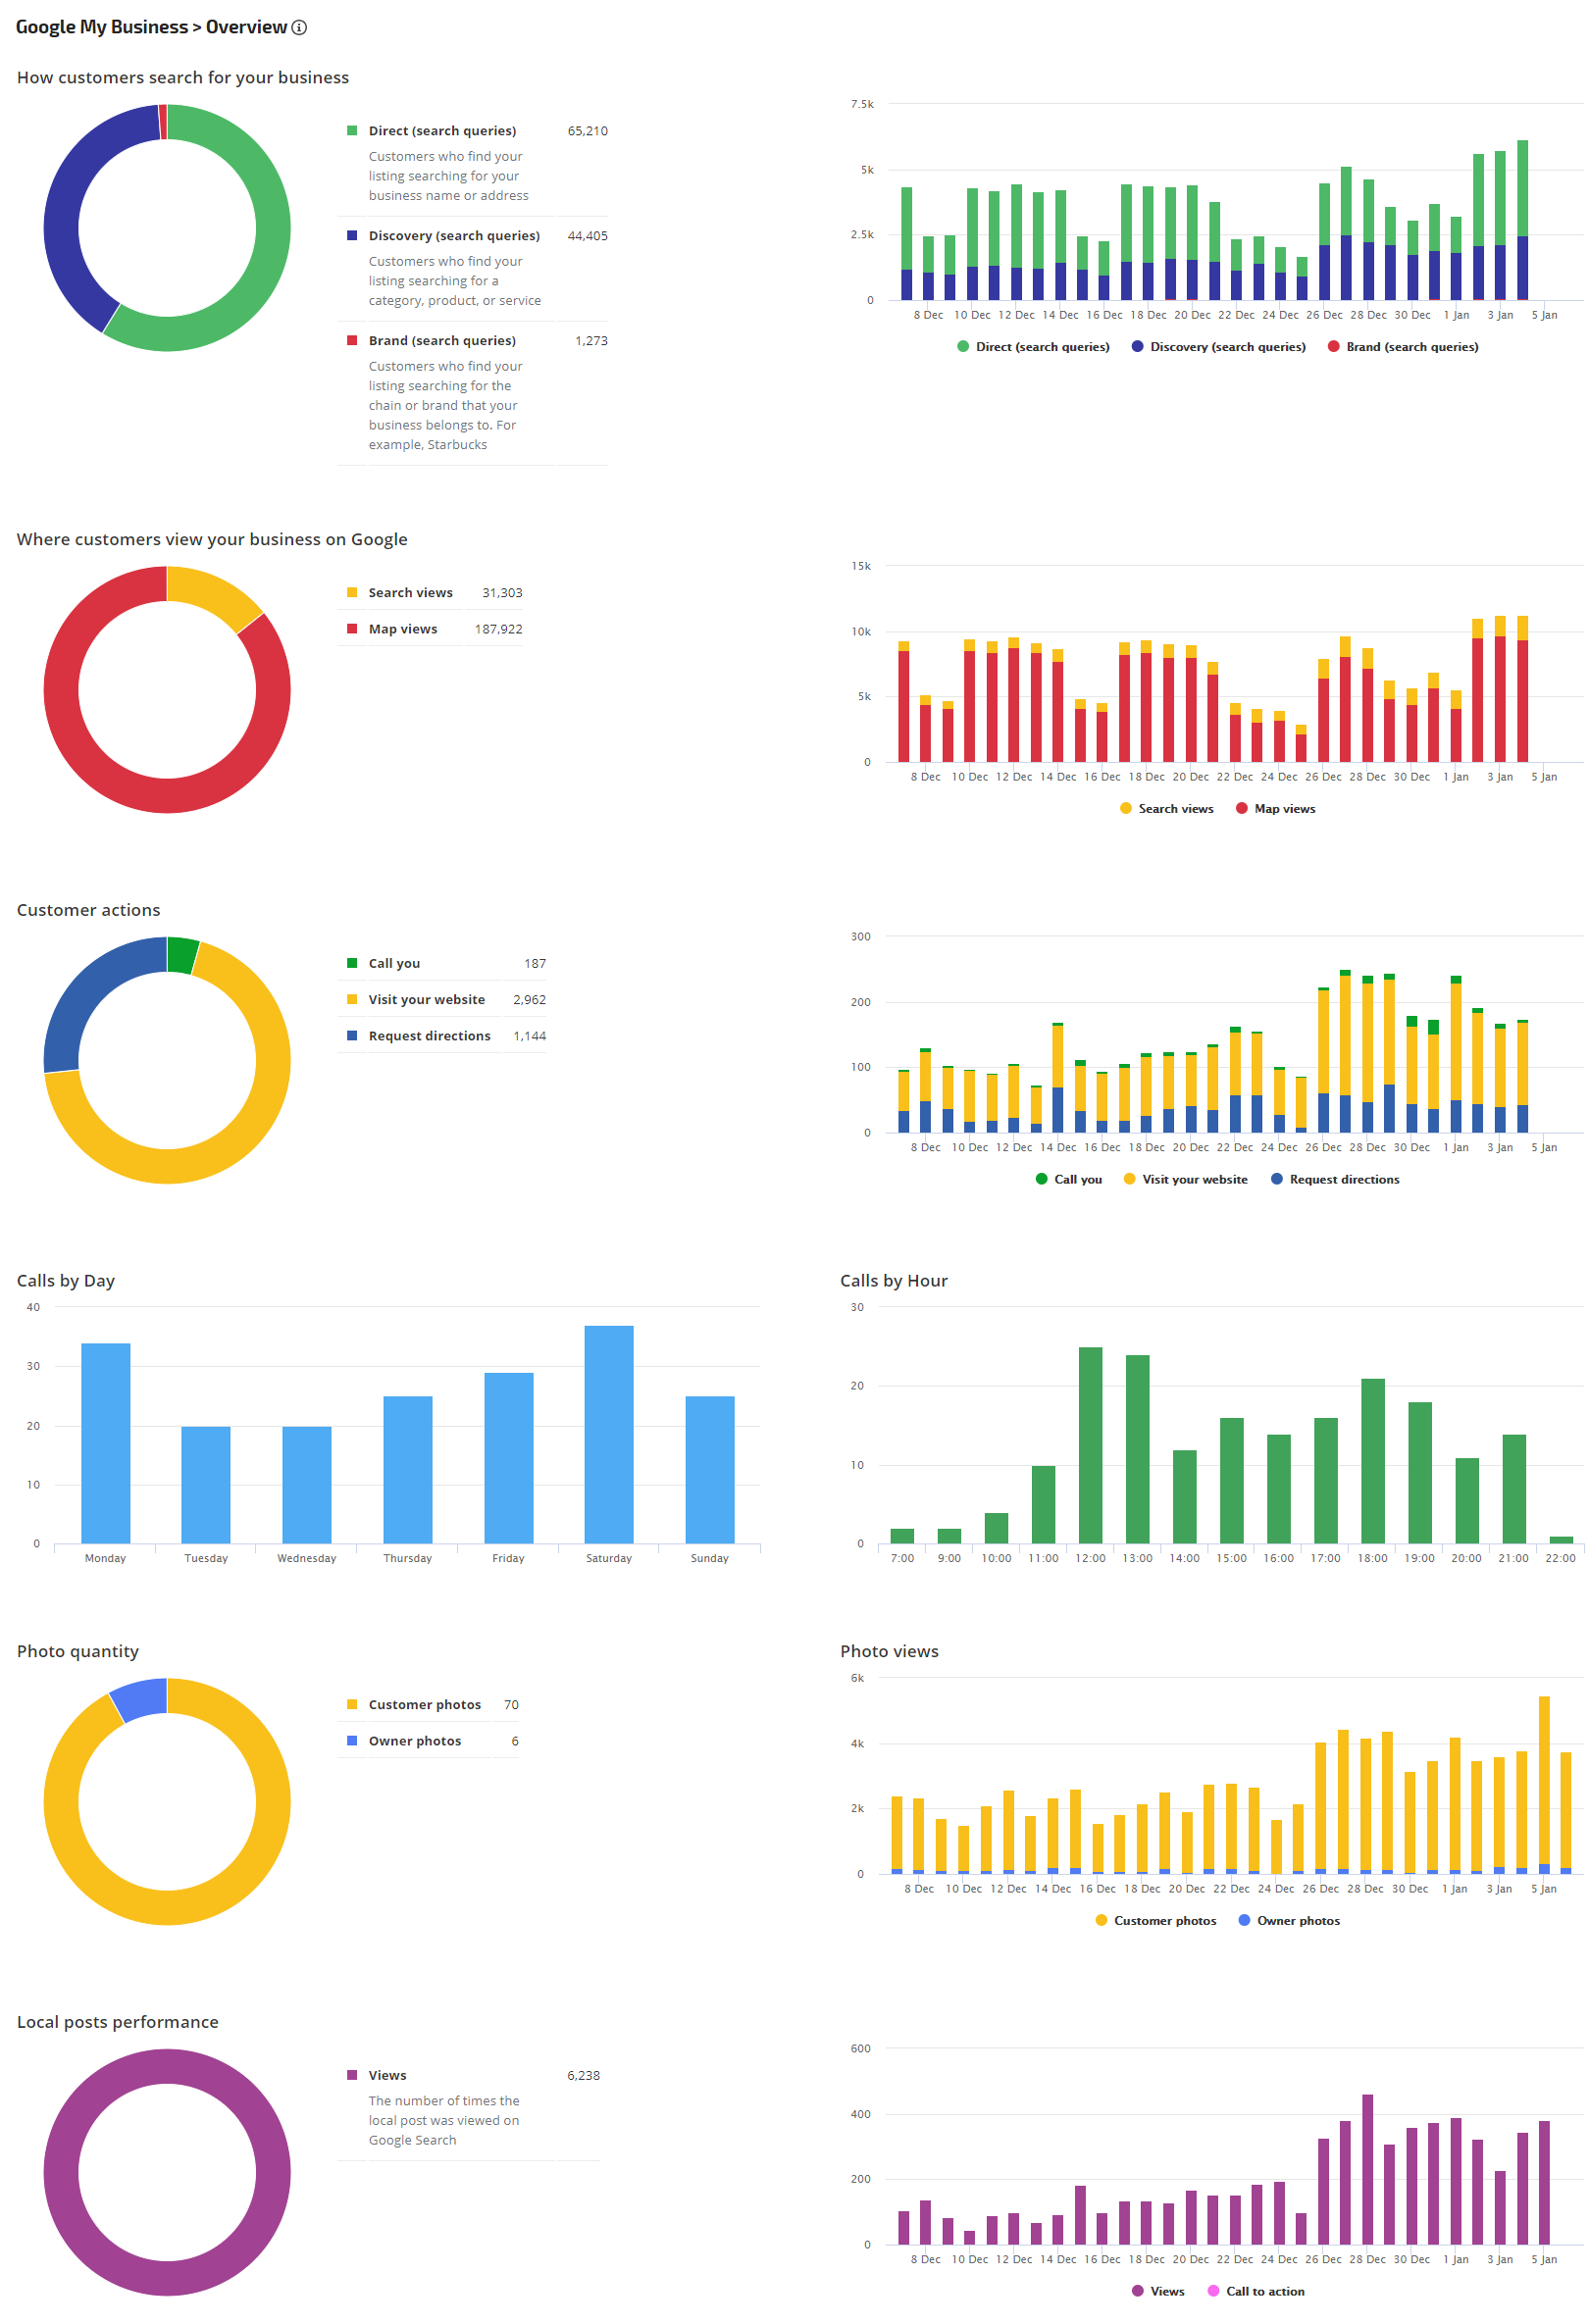 Google My Business Overview report